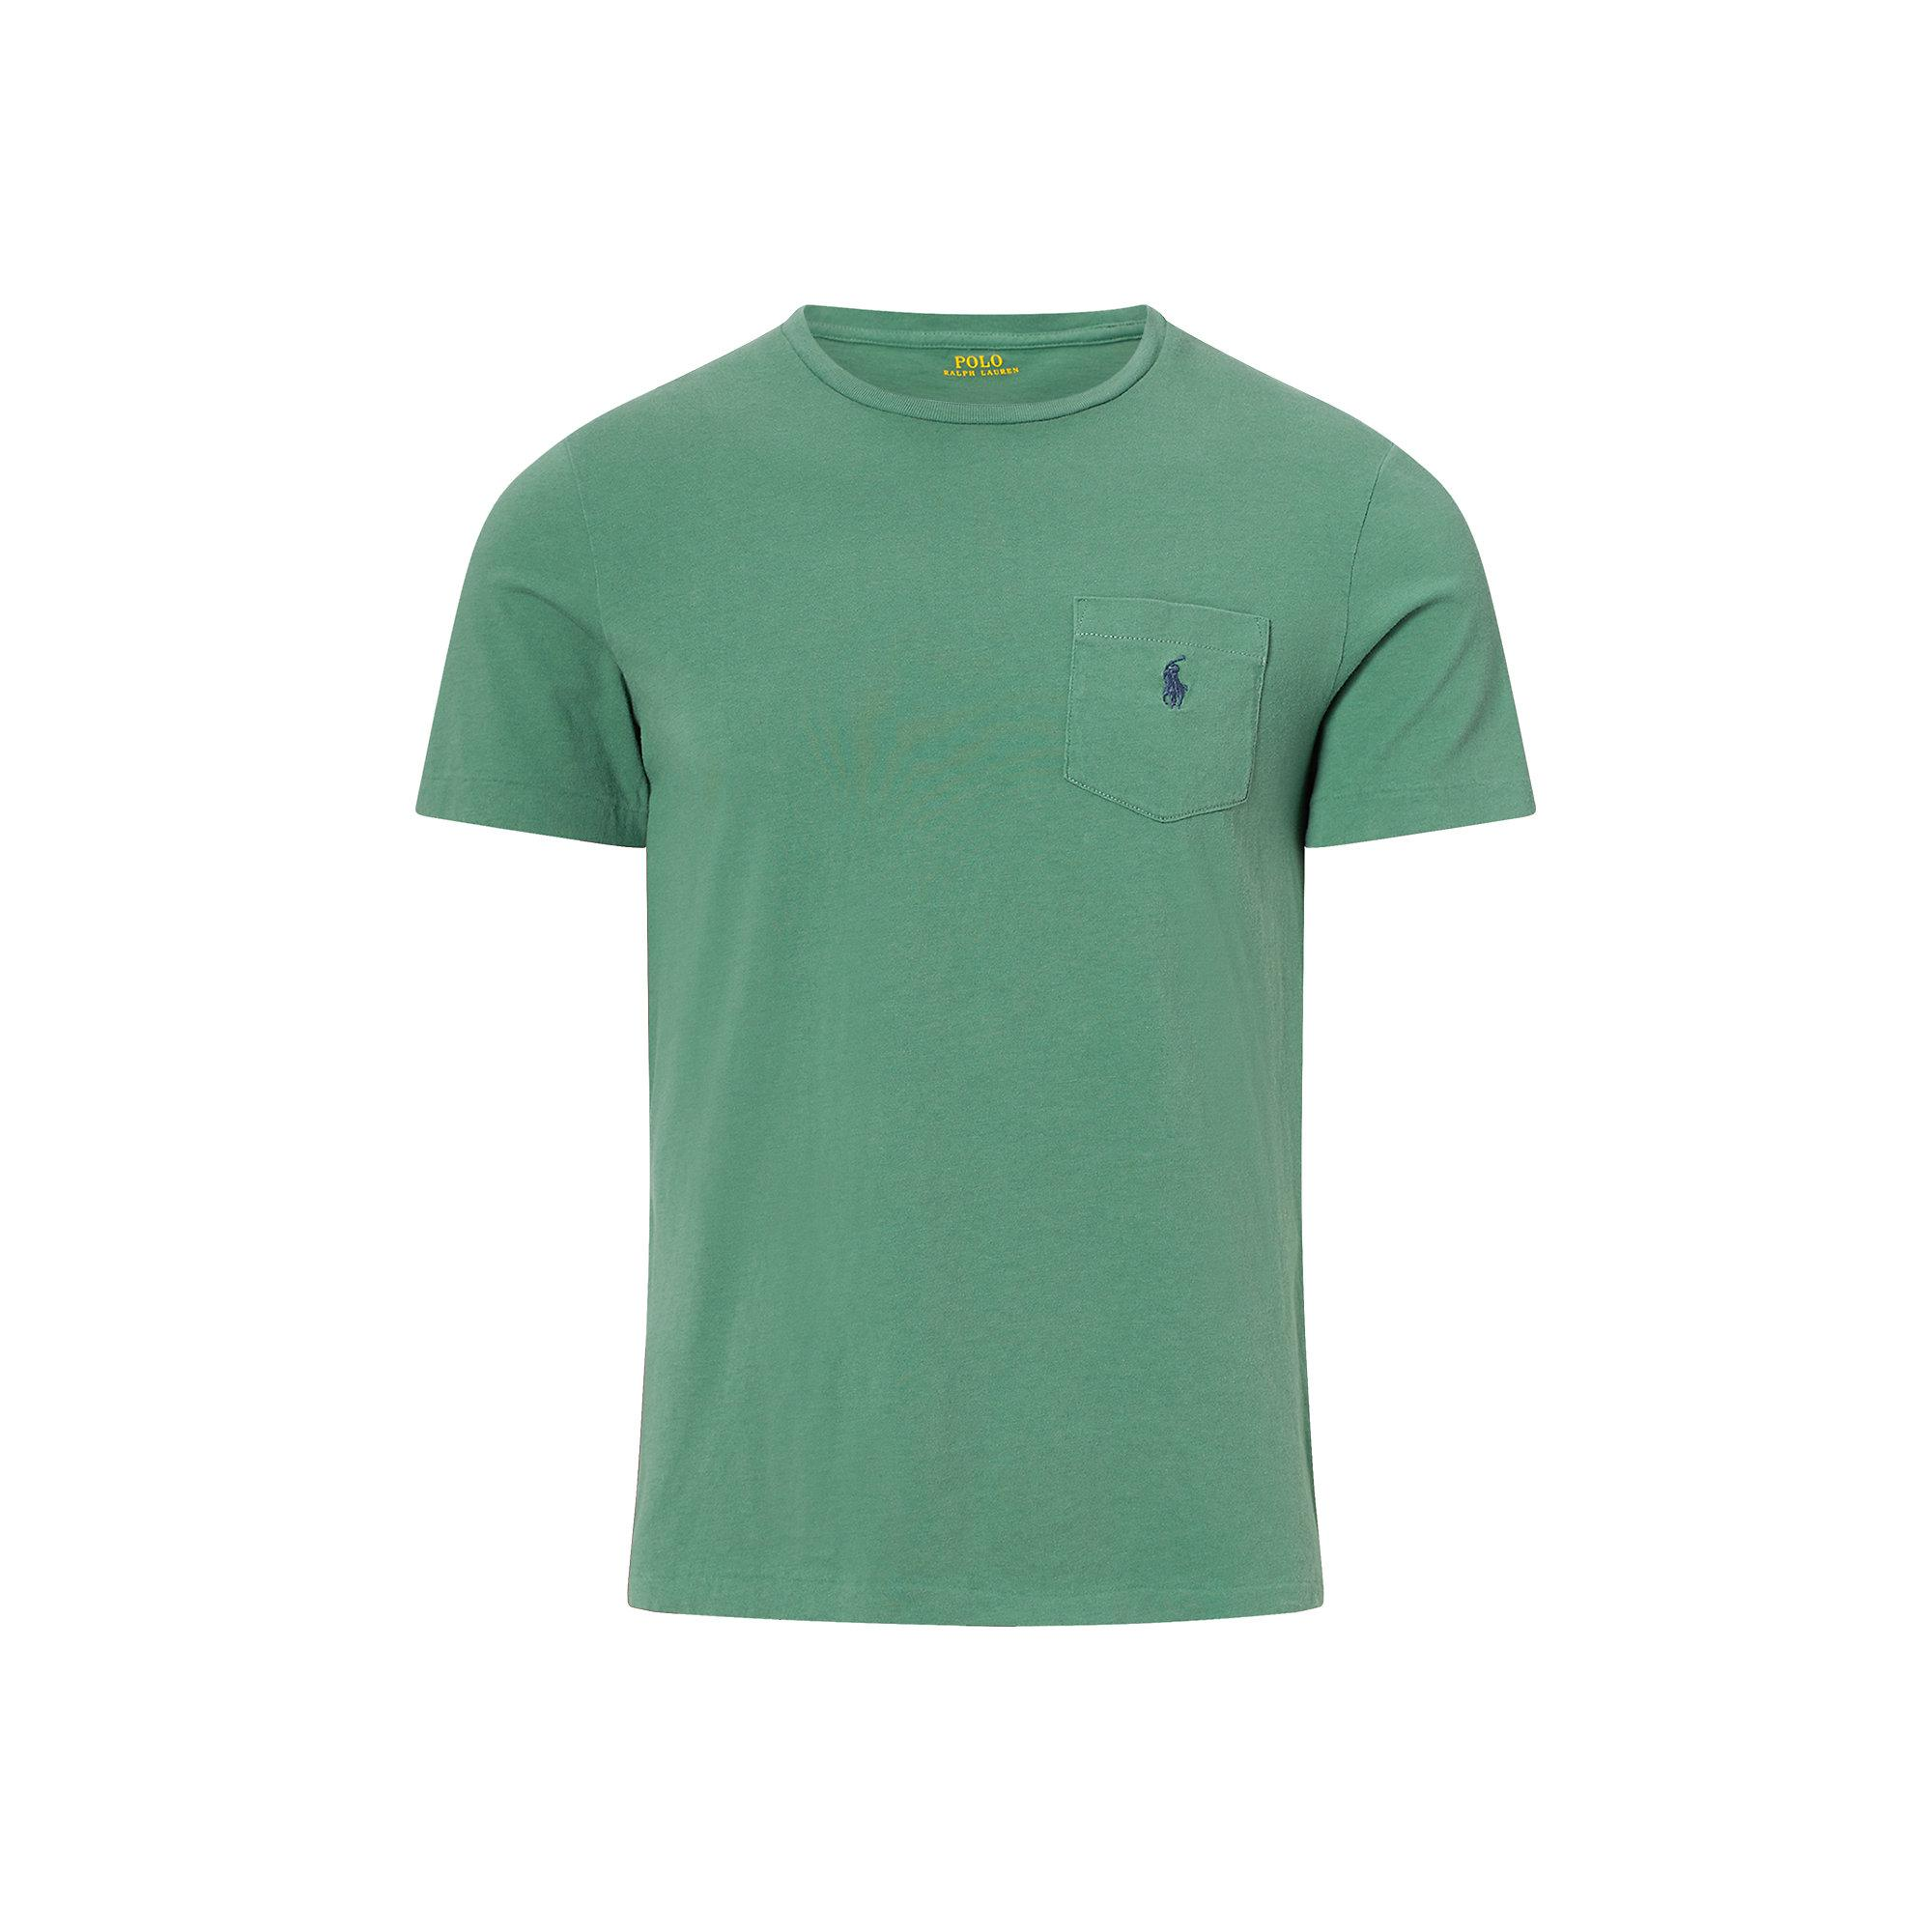 Polo ralph lauren custom fit cotton t shirt in green for for Custom fit t shirts